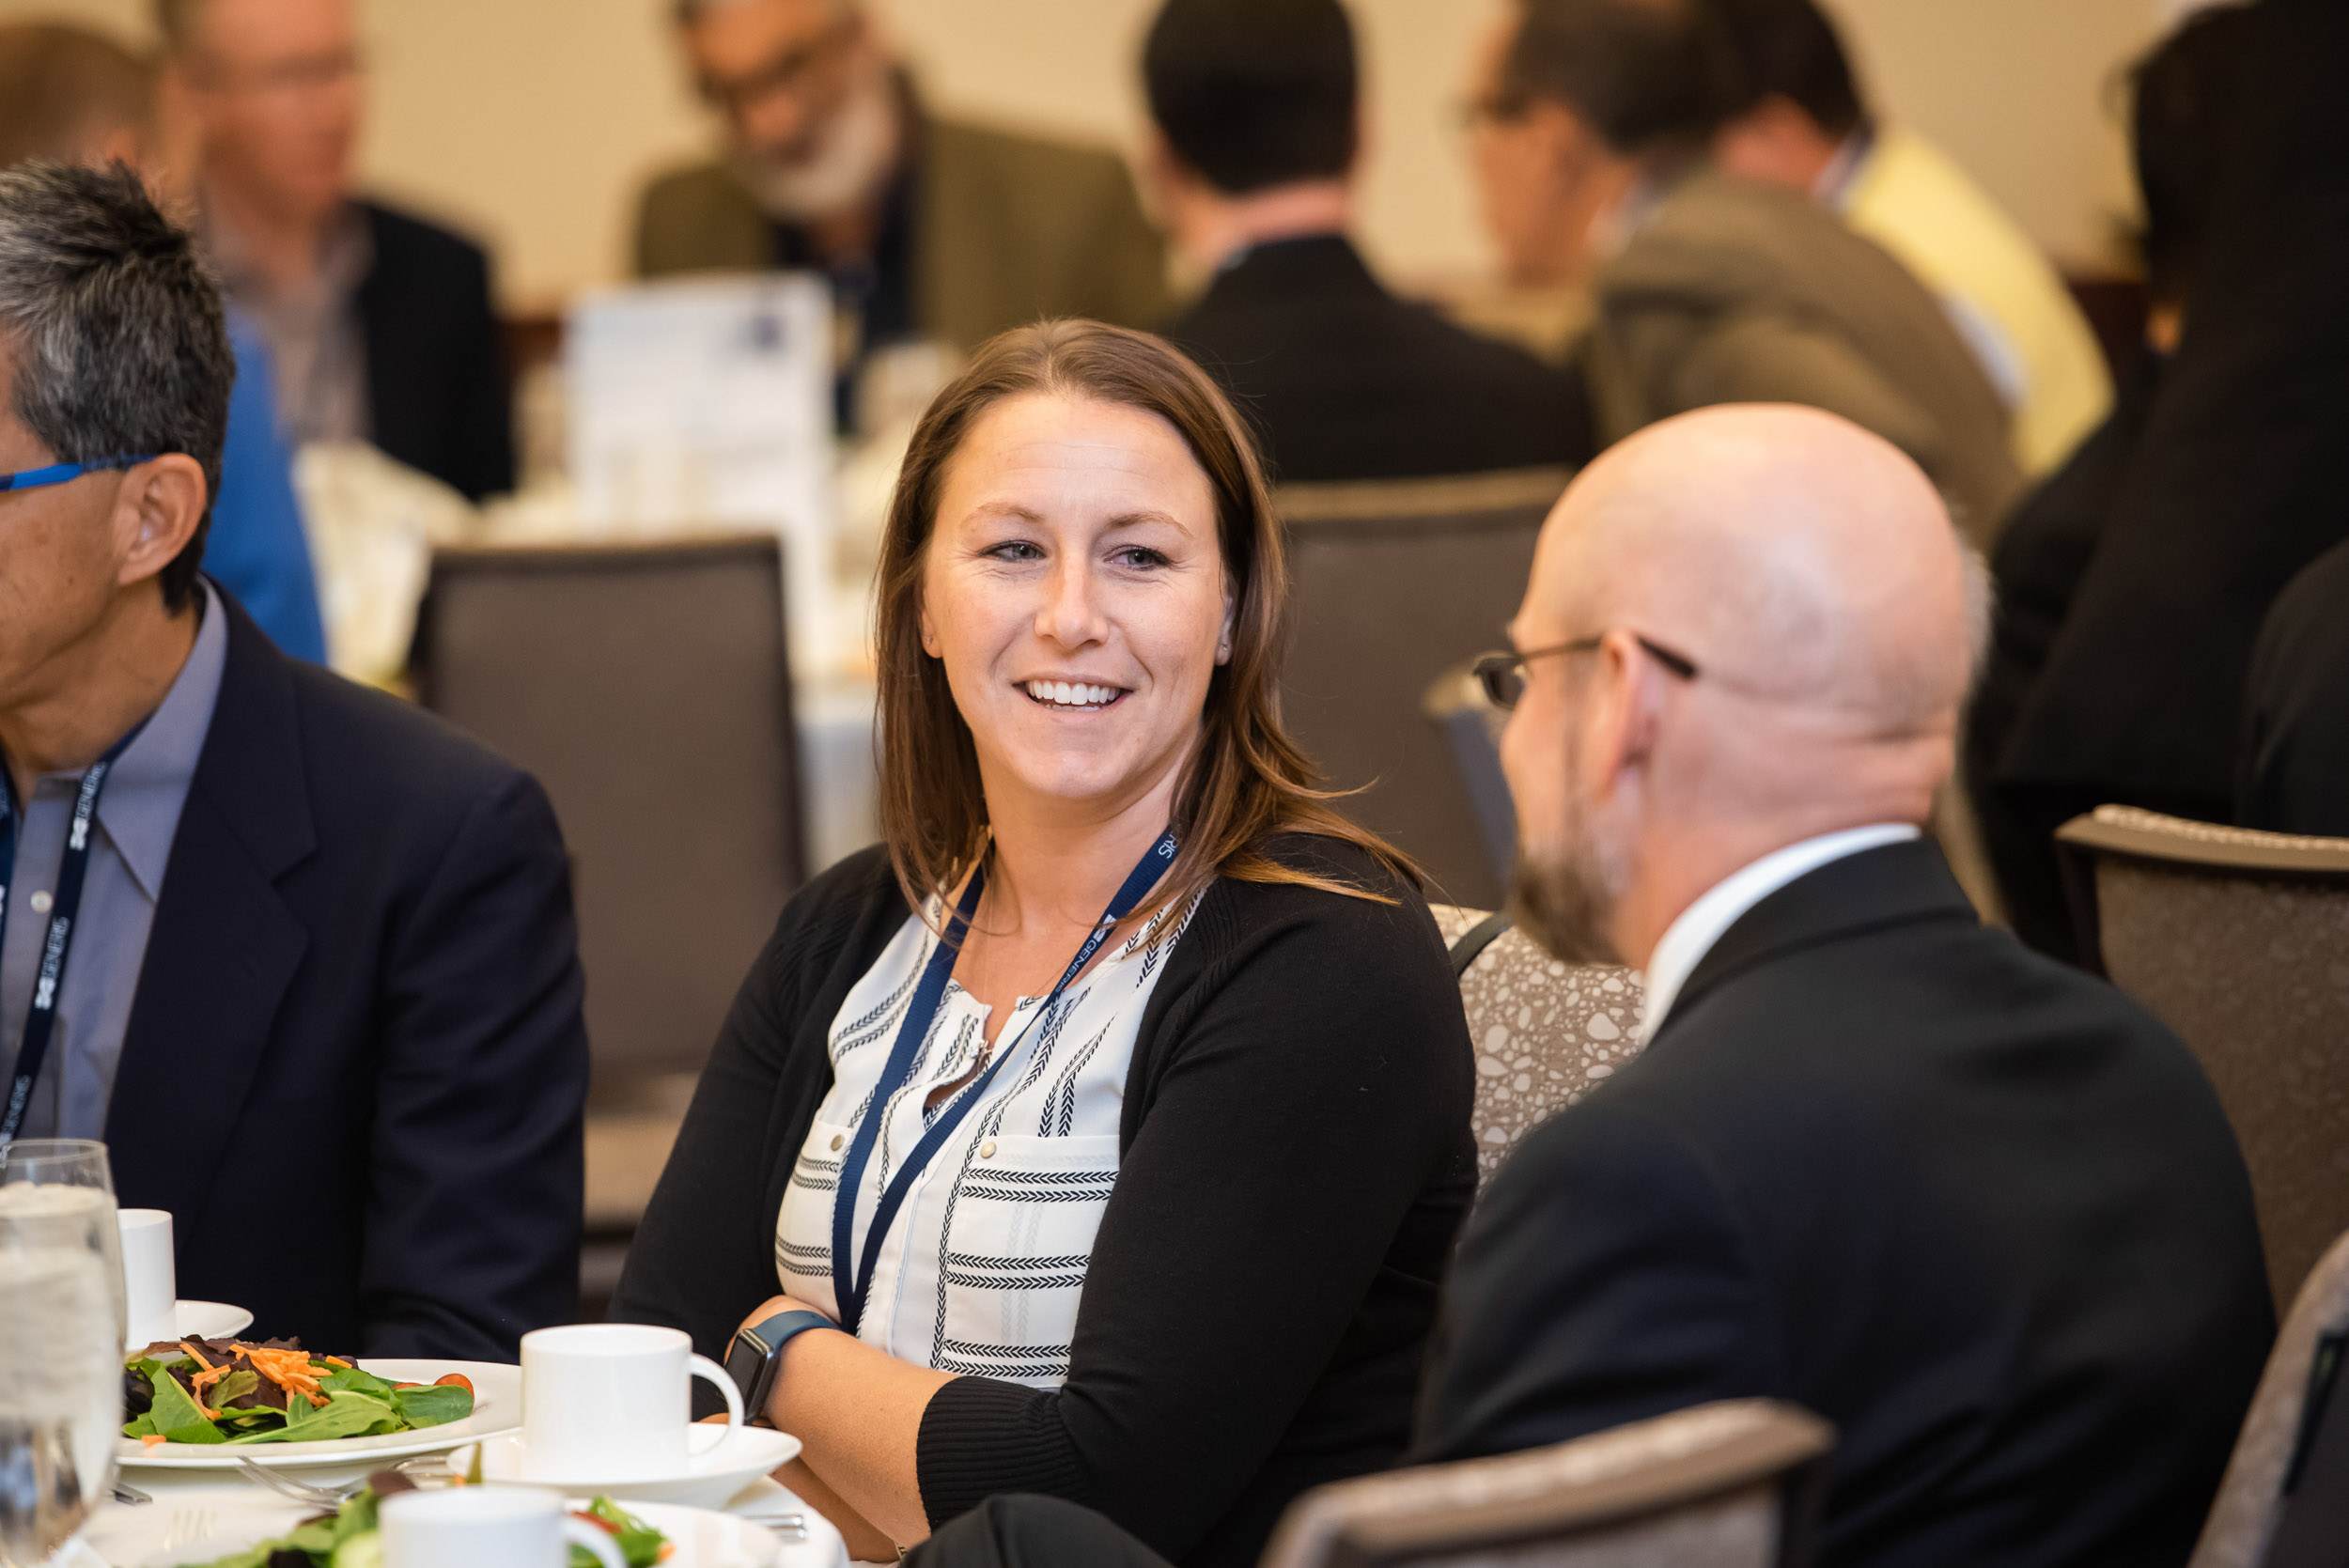 181024 - American Medical Device Summit - mark campbell photography-211_Resized_Resized.jpg